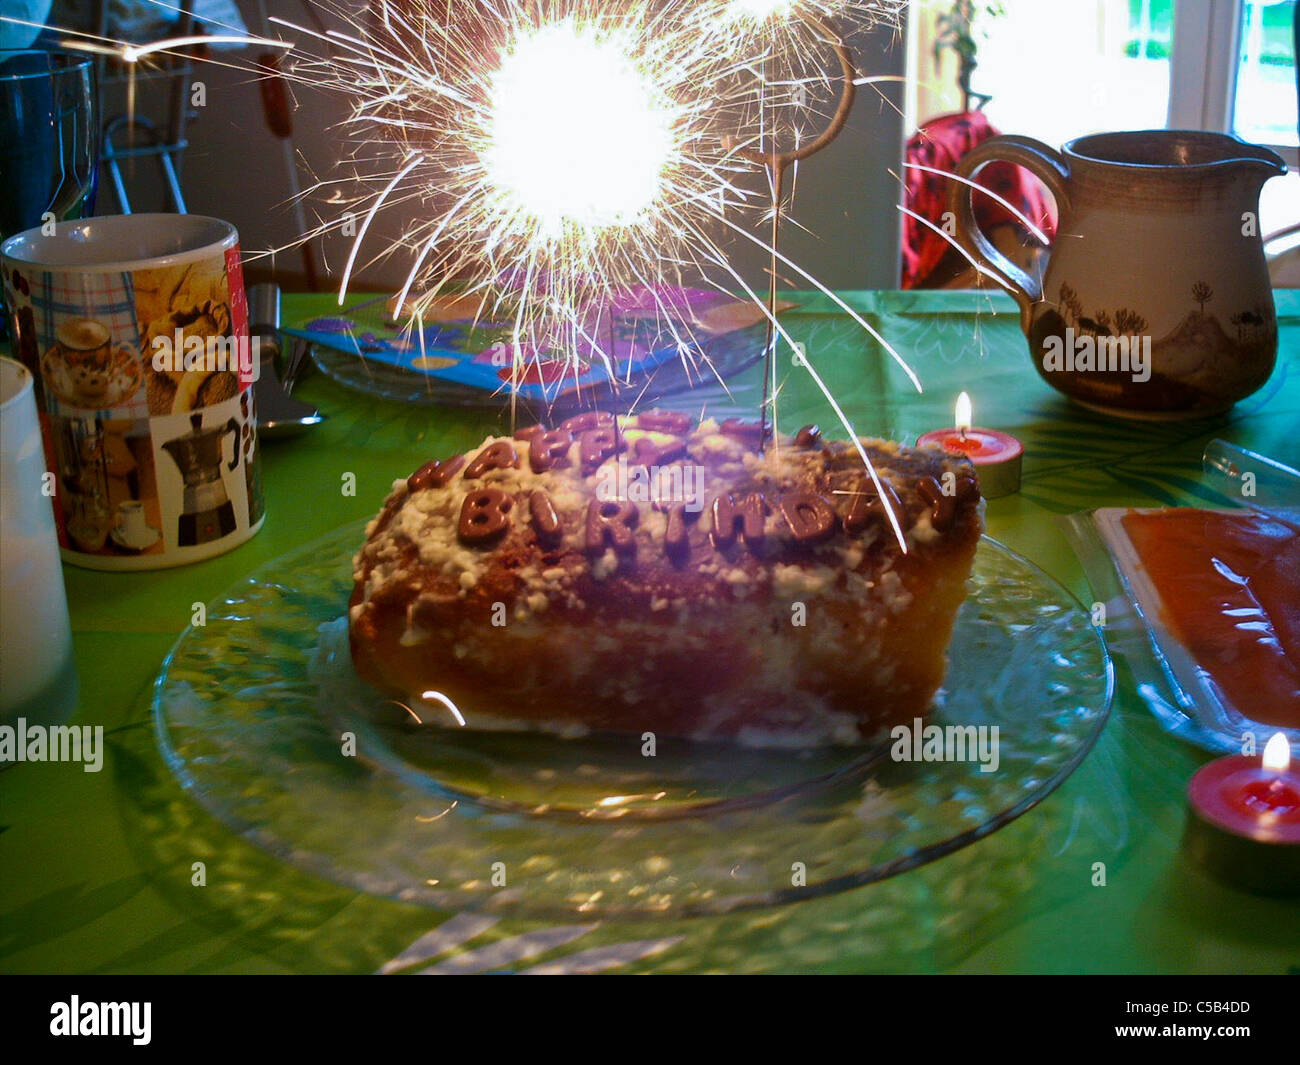 Homemade Birthday Cake With Lit Sparkler On Table